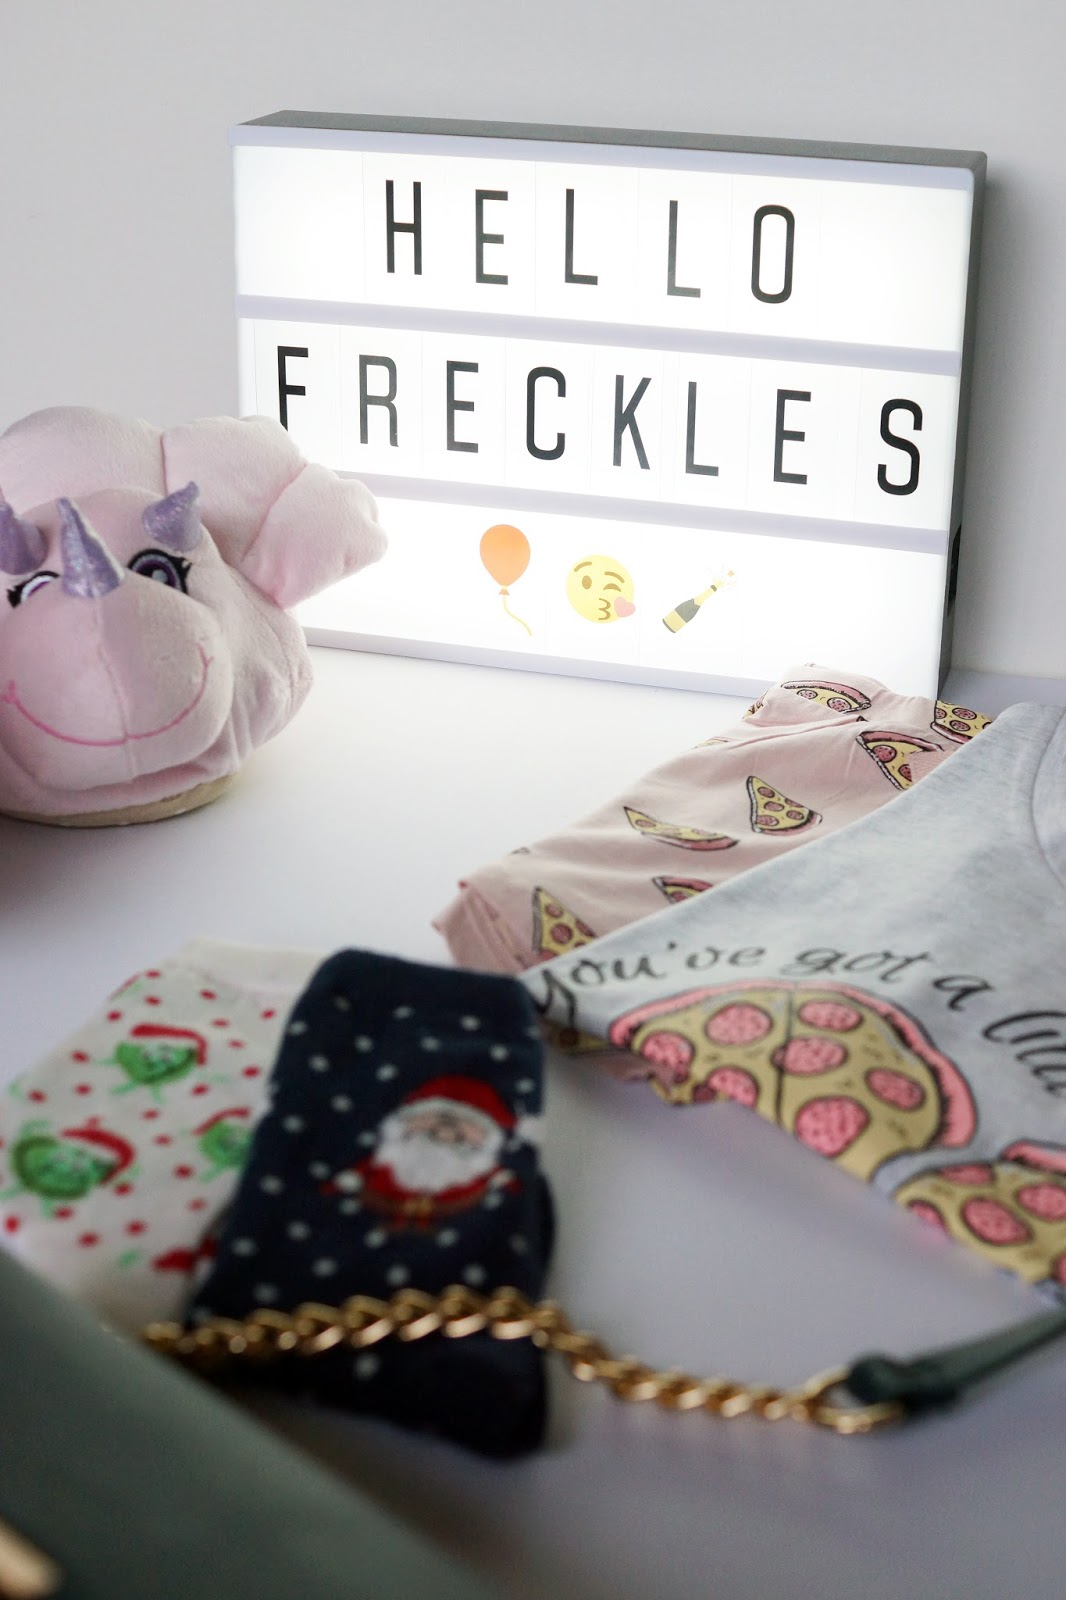 Hello Freckles Christmas Gifts with New Look Festive